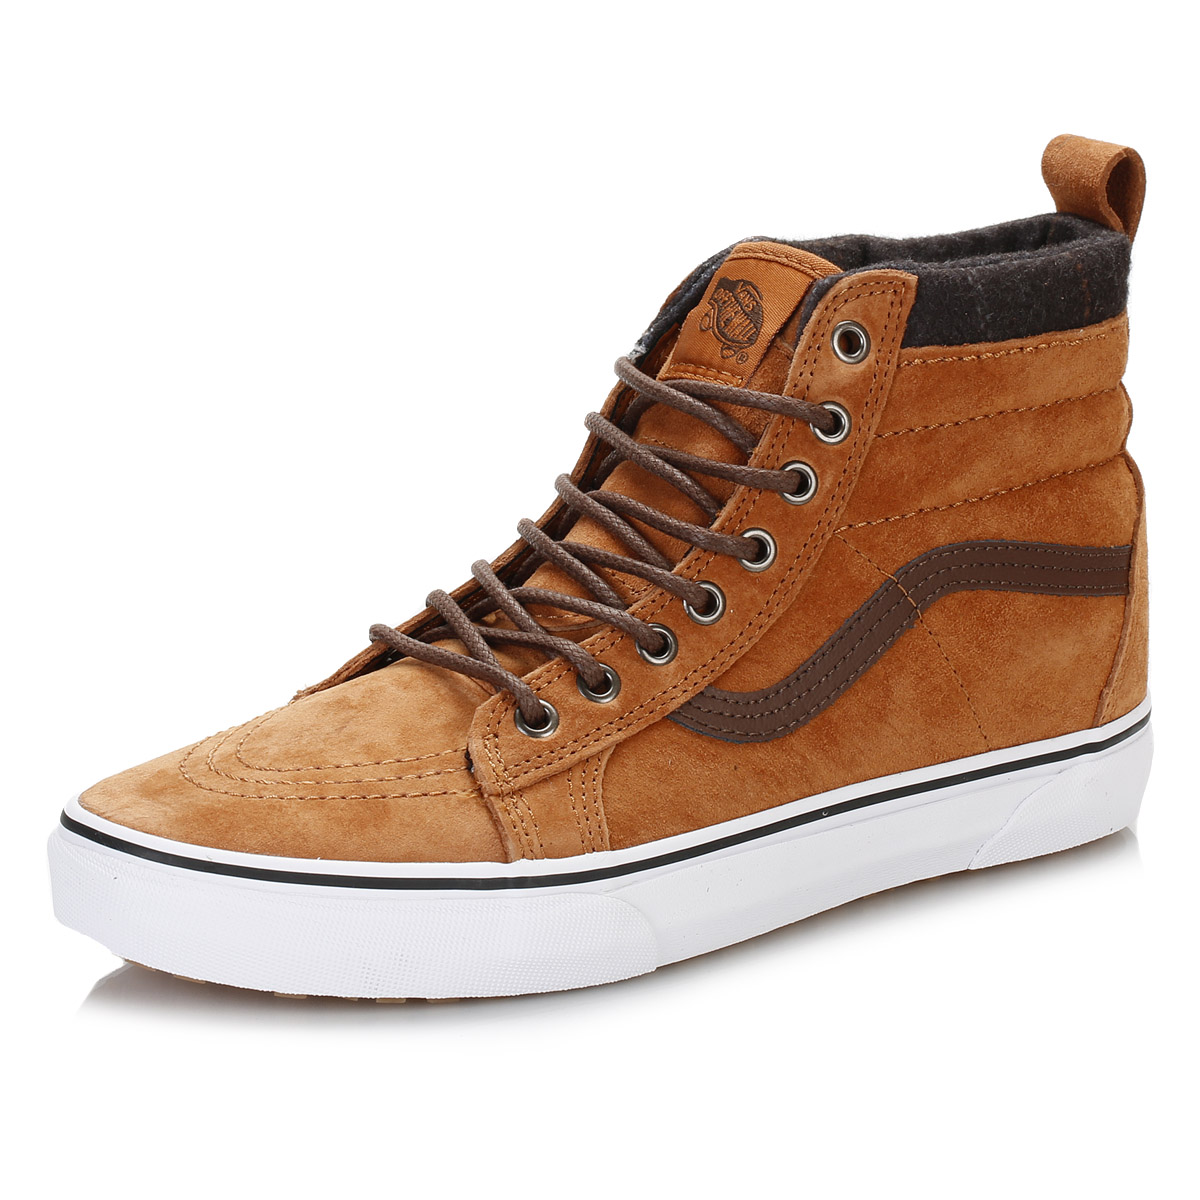 Vans Mens Trainers, Brown SK8 High Tops, Suede Casual ...